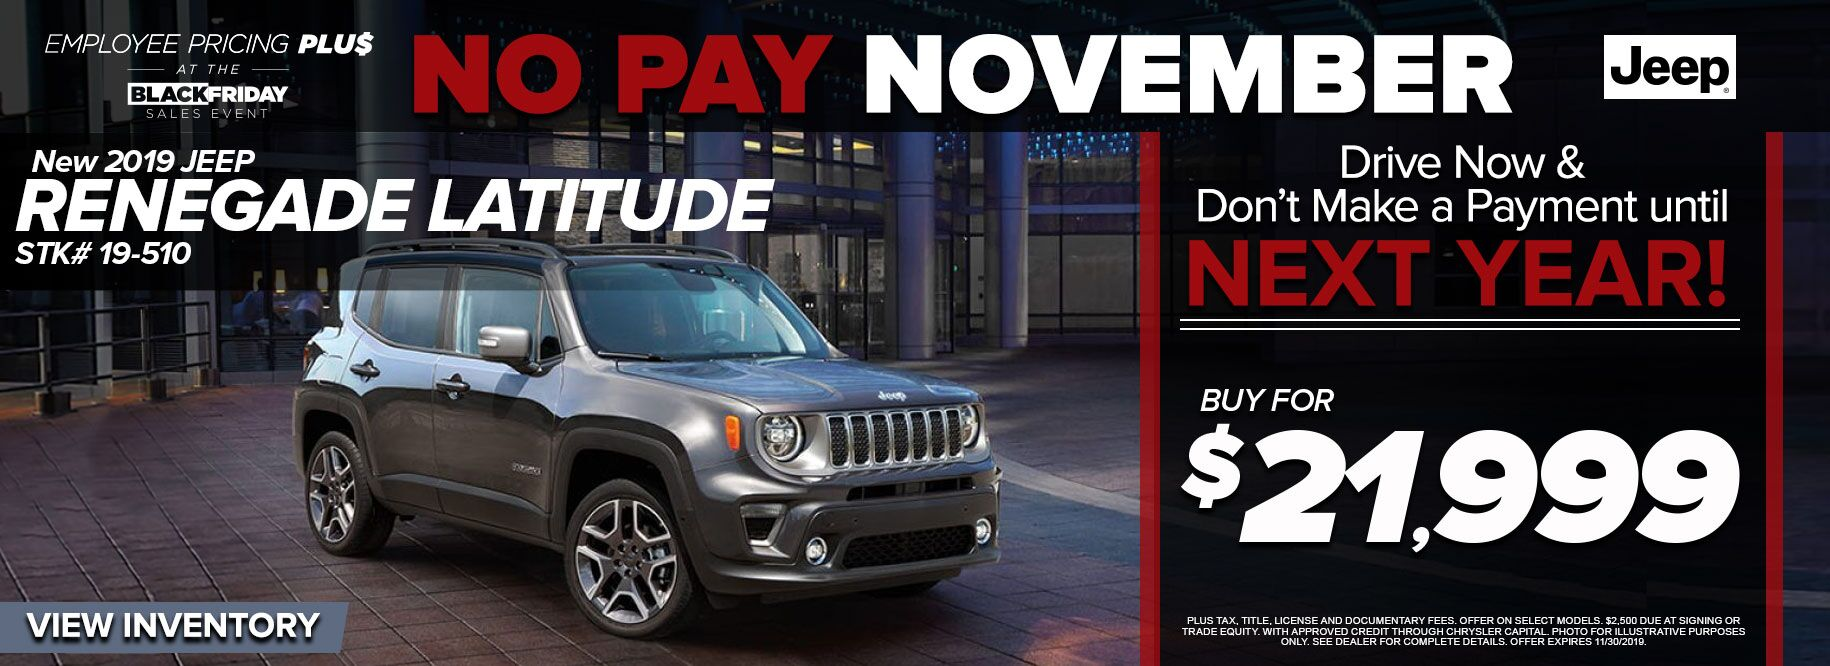 2019 Jeep Renegade Laitude